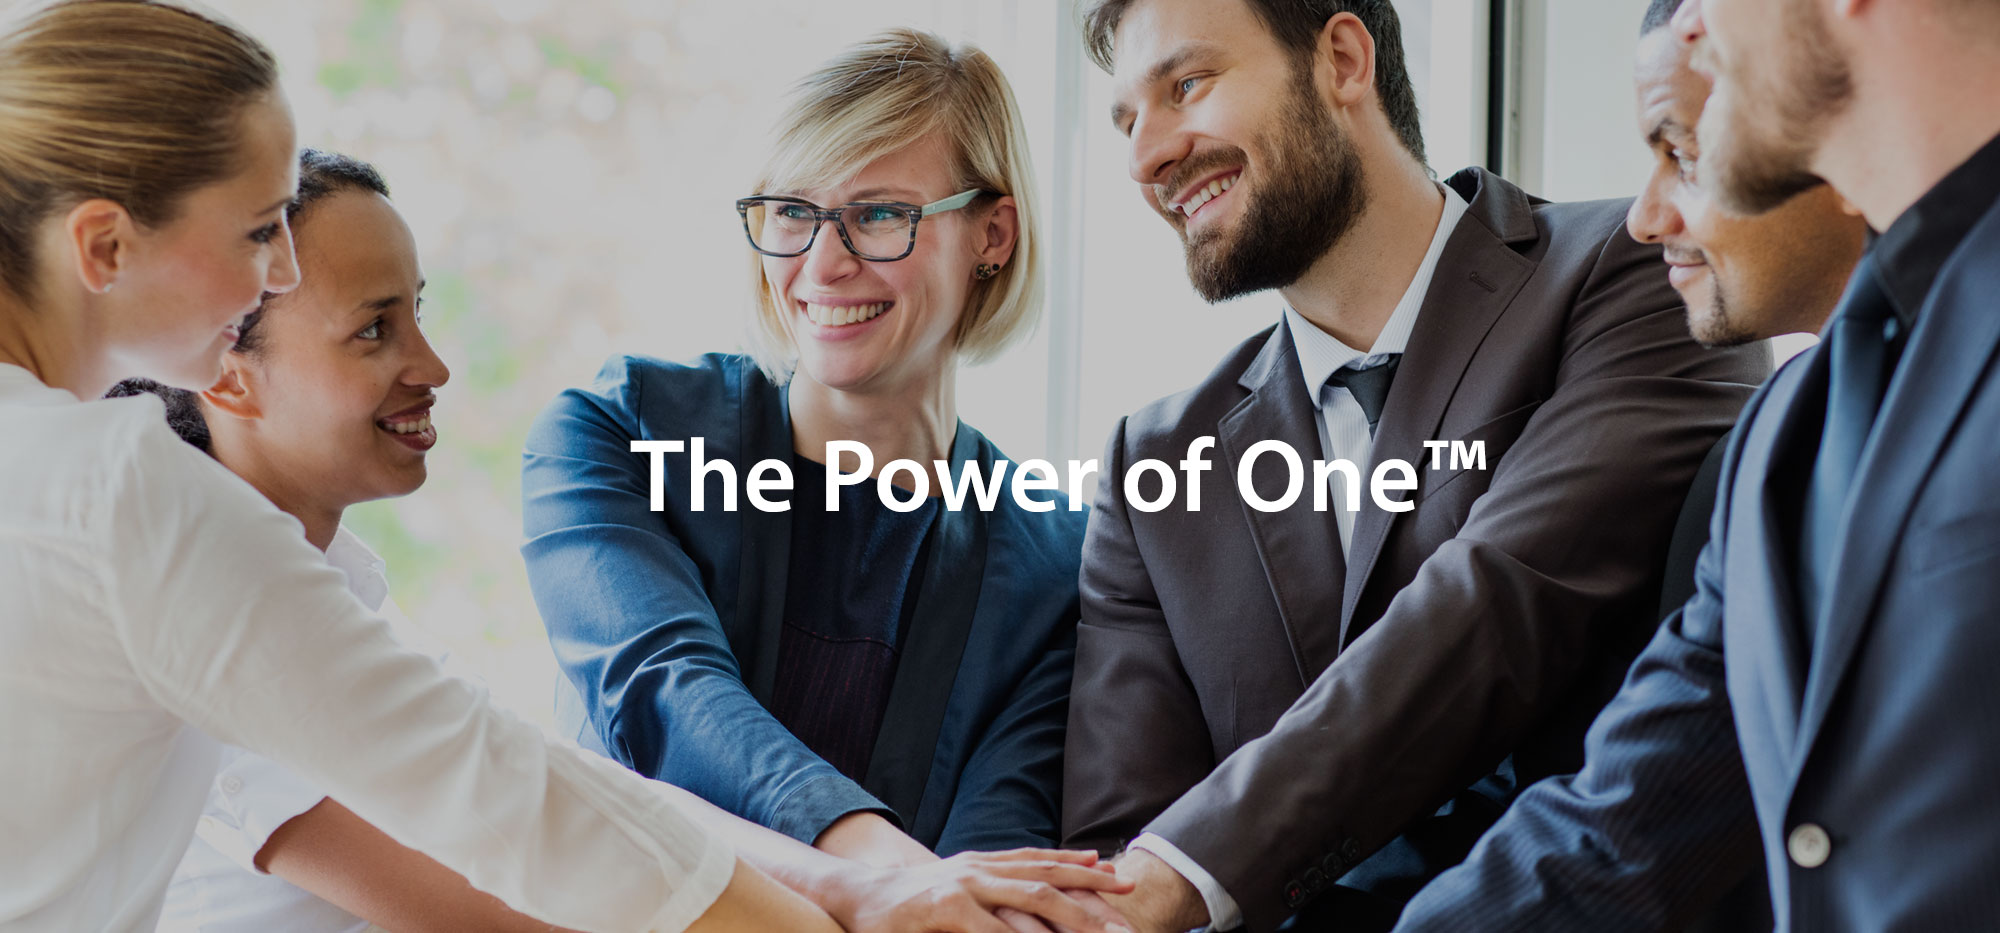 Expanding the Power of One™ – Trustpoint.One® Acquires Kelly Legal Managed Services.